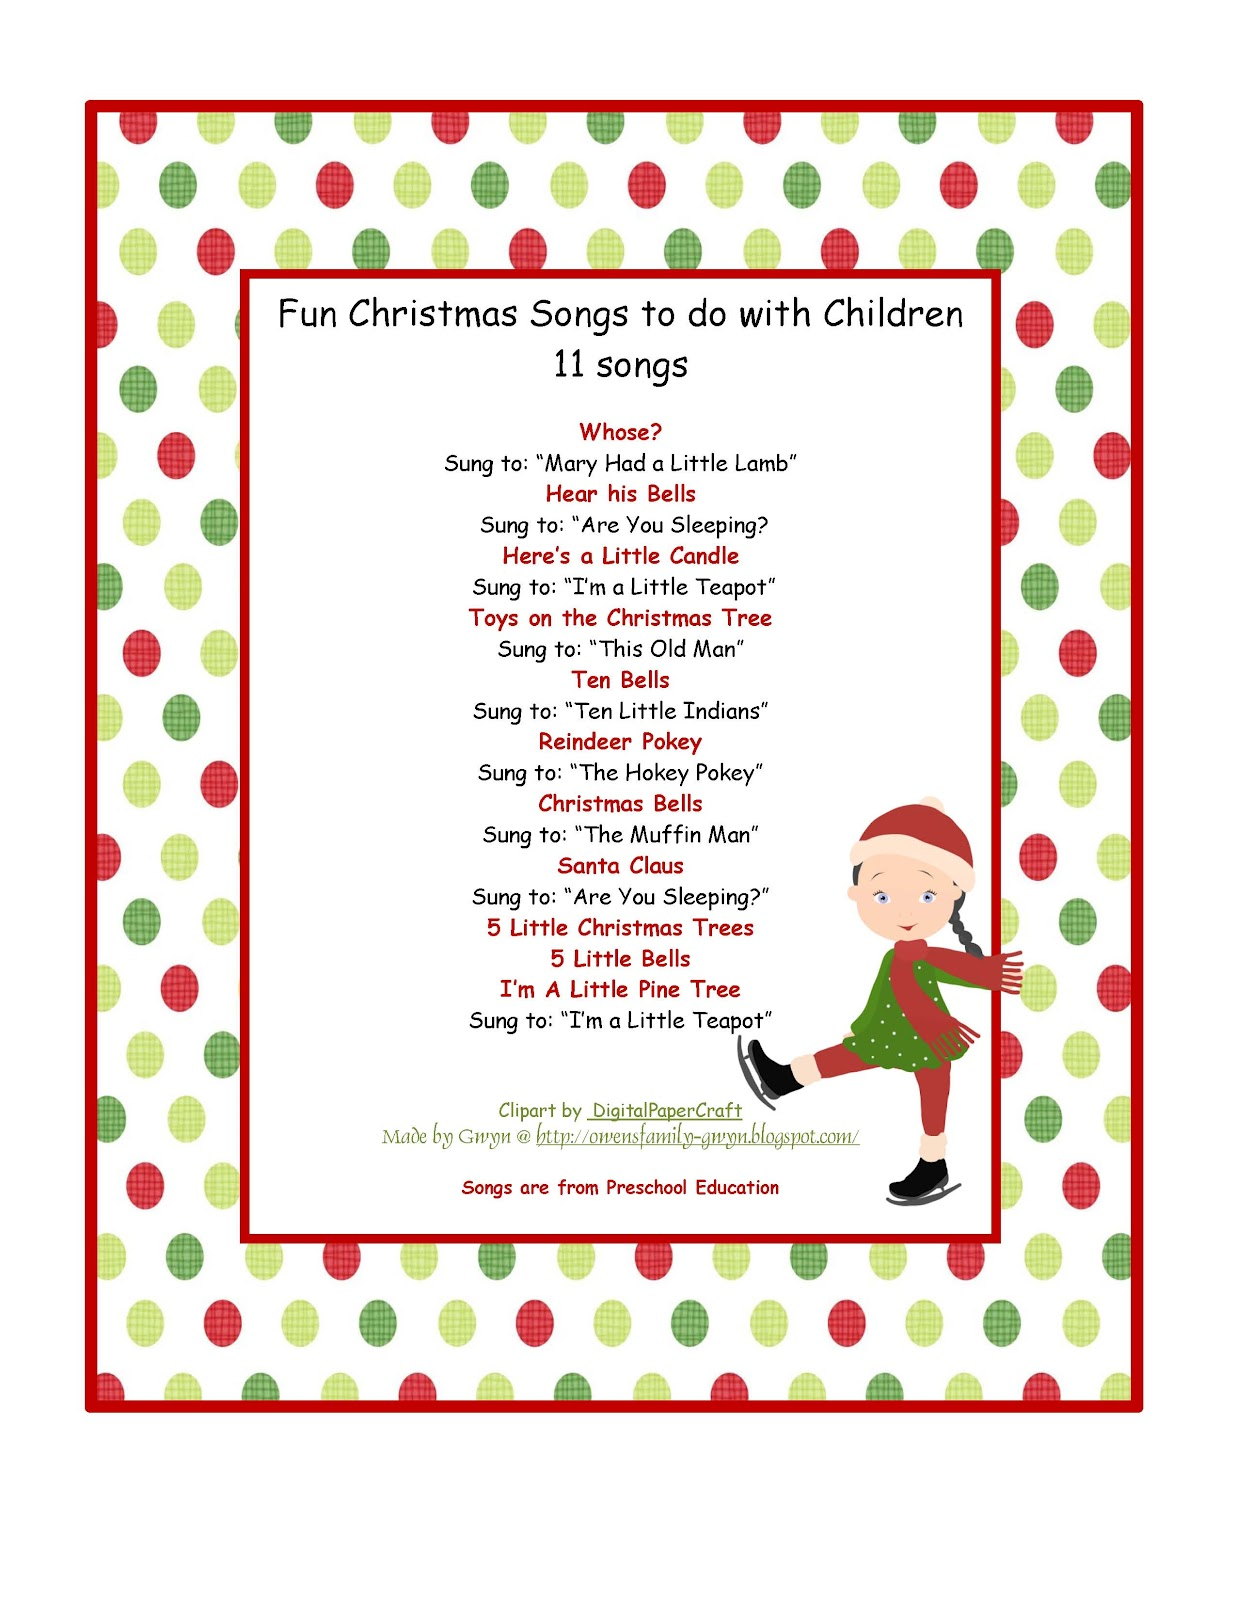 photo regarding Lyrics to We Wish You a Merry Christmas Printable called We Desire Oneself A Merry Xmas Lyrics Browsing Gallery